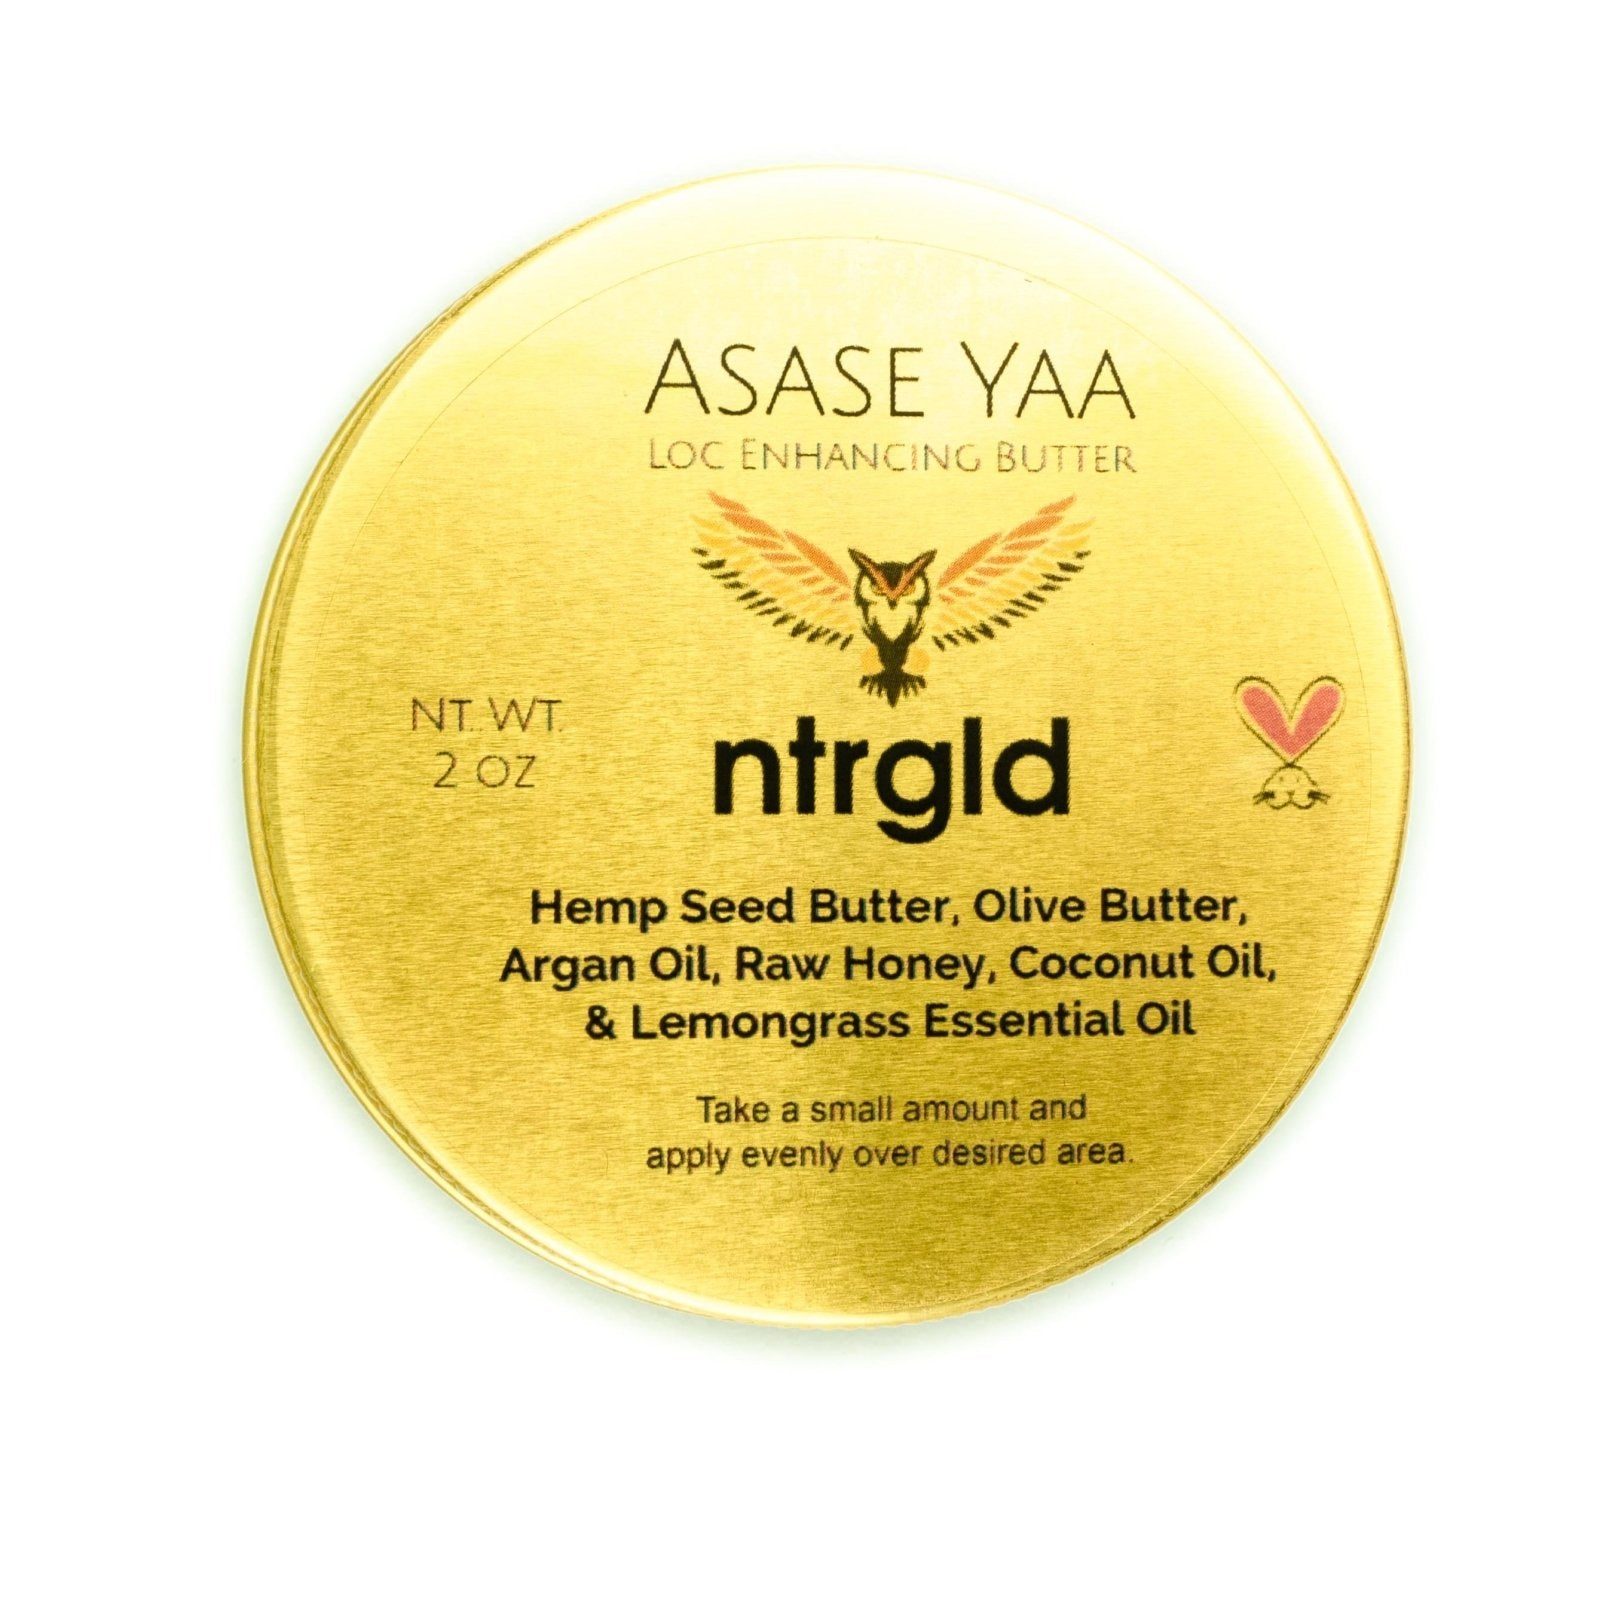 Asase Yaa - Loc Enhancing Butter - Neter Gold - NTRGLD - NETER GOLD - All natural body care products designed to increase your natural godly glow. - hair growth - eczema - dry skin